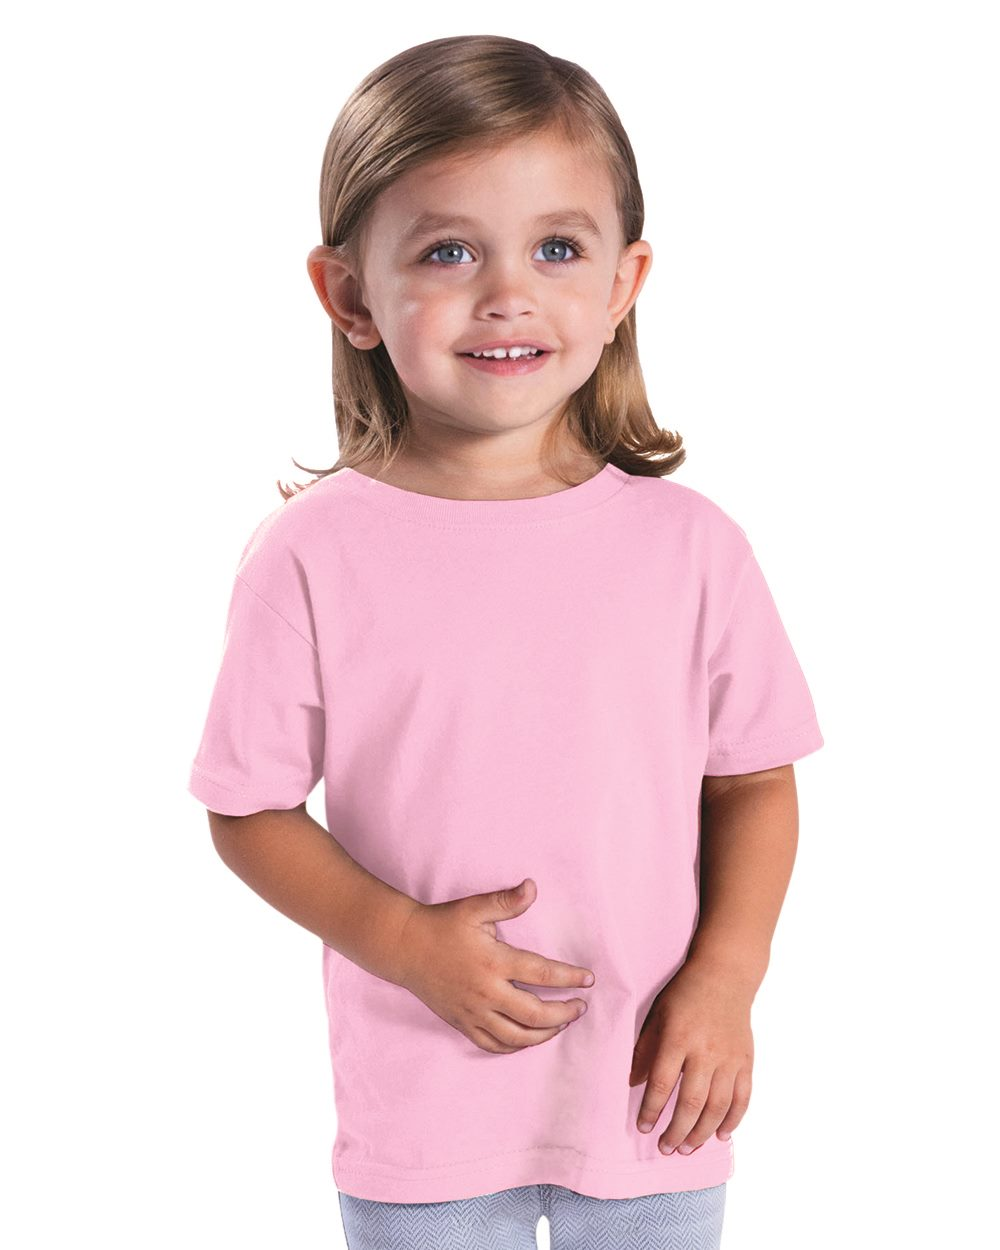 Rabbit Skins 3080 - The Classic Collection Toddler Short Sleeve Tee